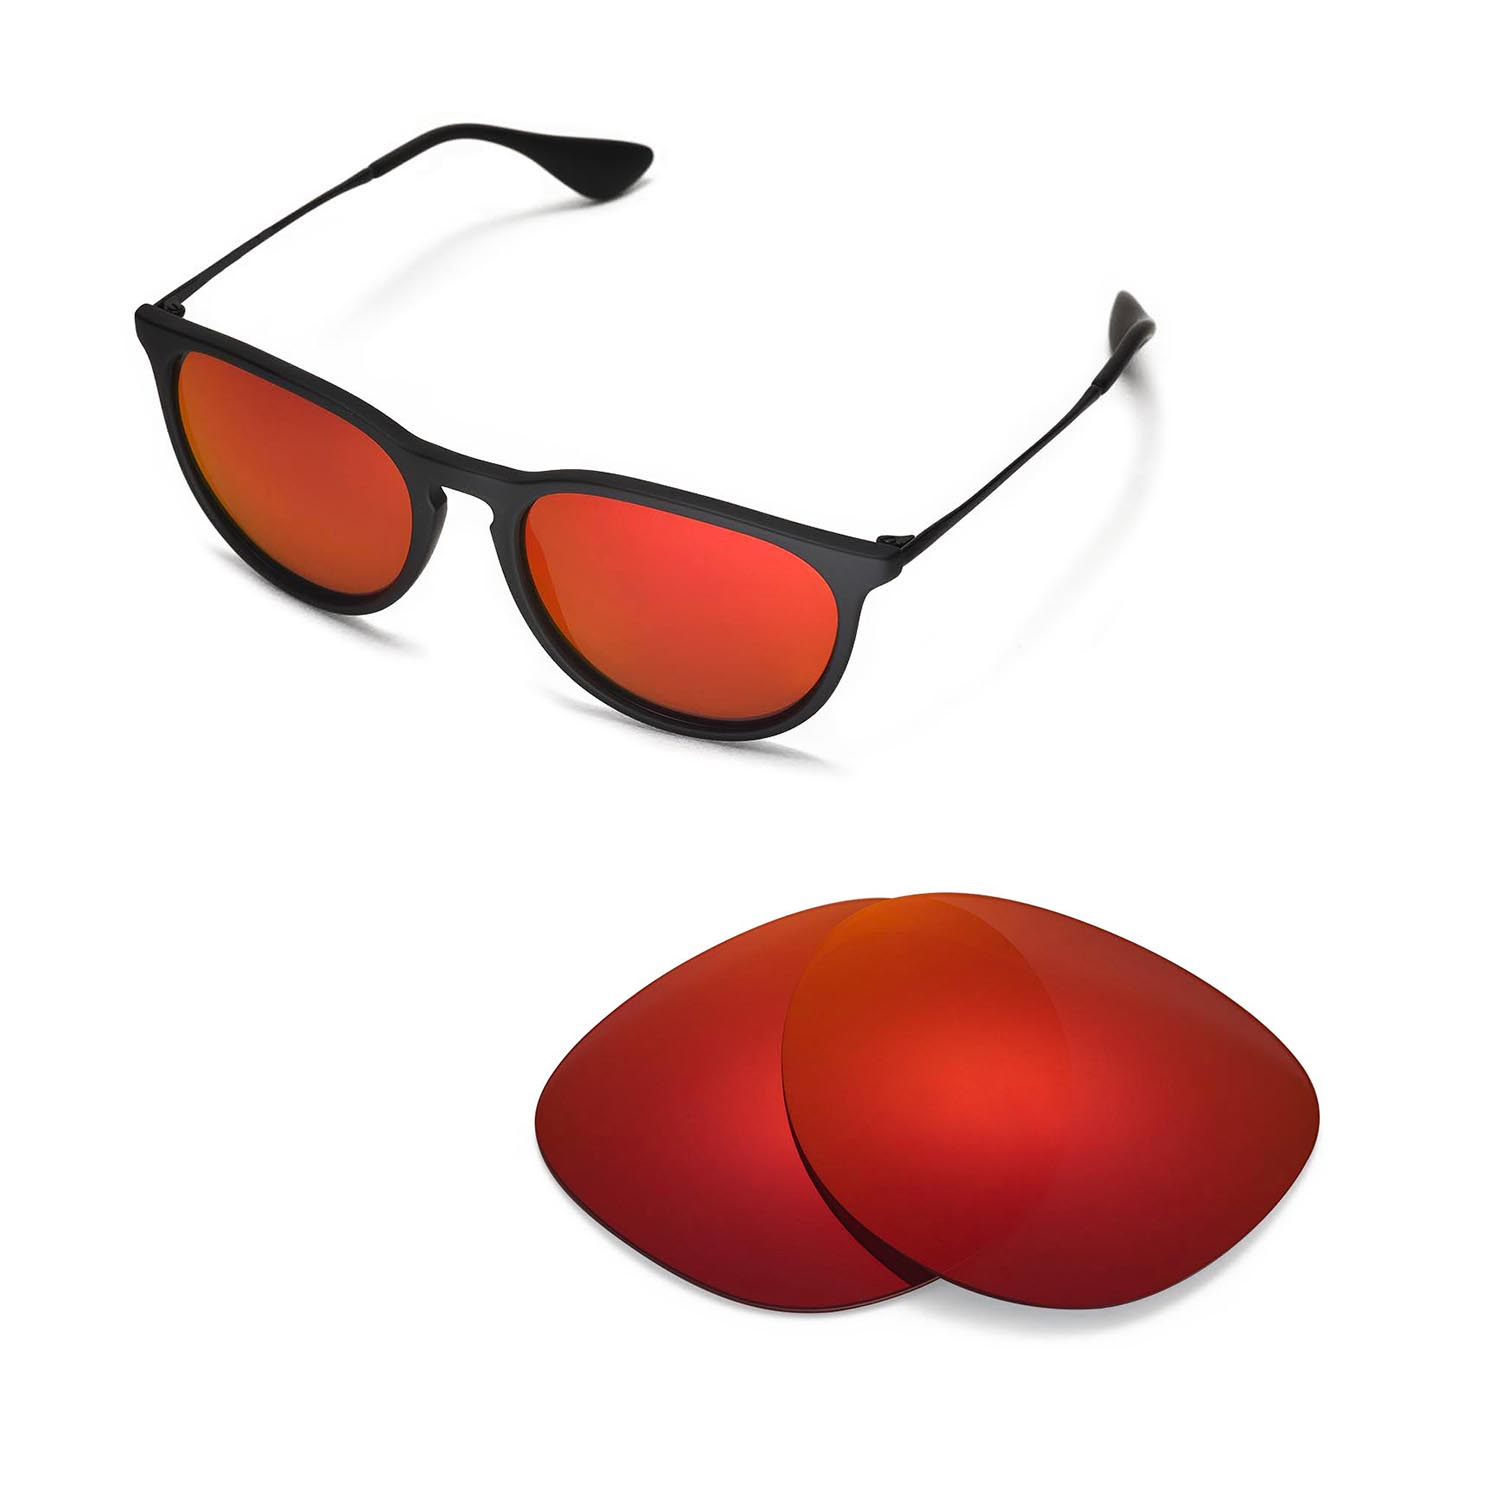 eee13f6c484 Details about New Walleva Polarized Fire Red Lenses For Ray-Ban Erika  RB4171 54m Sunglasses